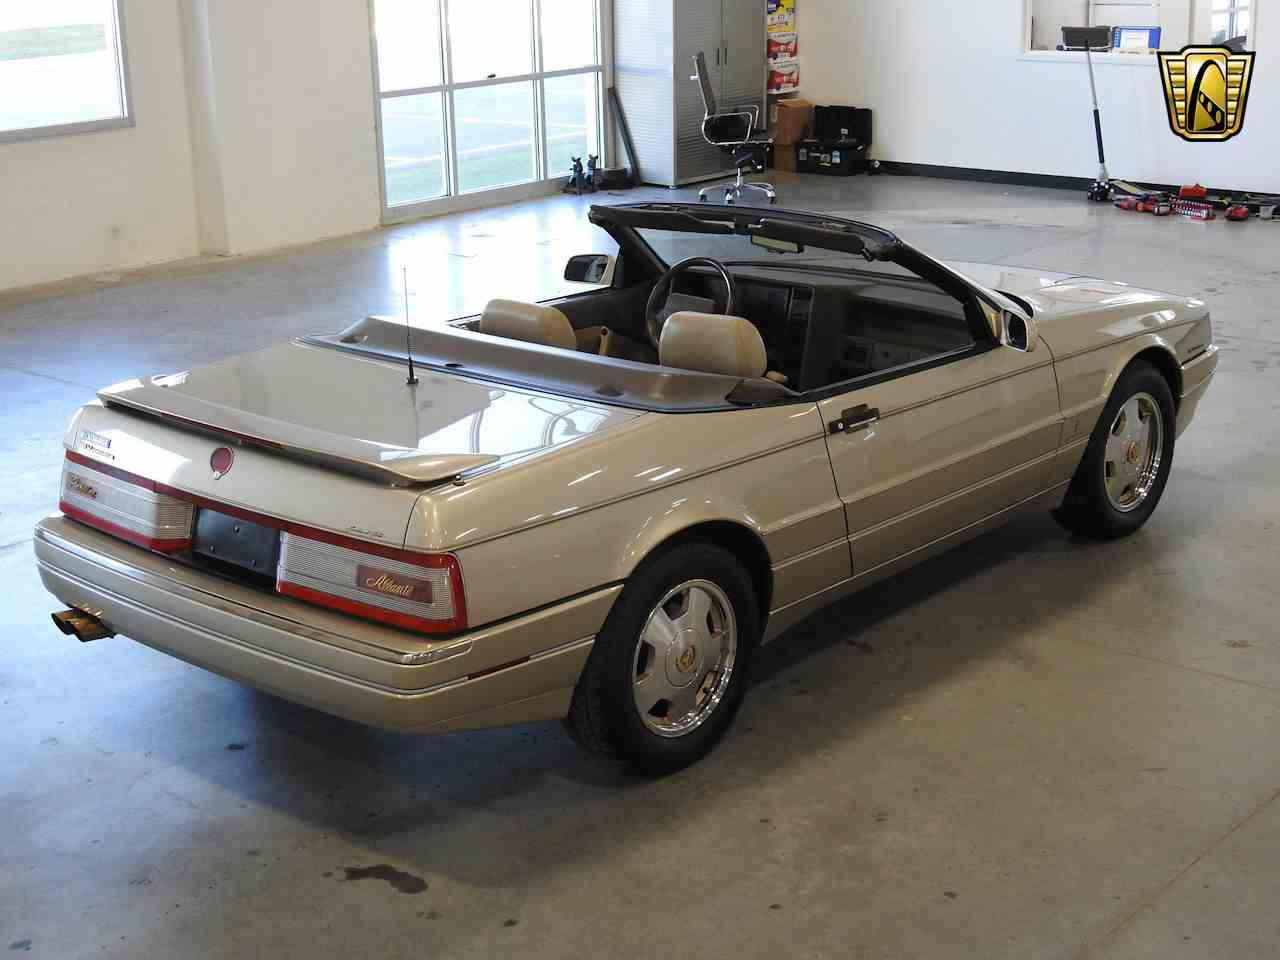 Large Picture of 1993 Cadillac Allante located in Kenosha Wisconsin - $8,995.00 Offered by Gateway Classic Cars - Milwaukee - MDHG